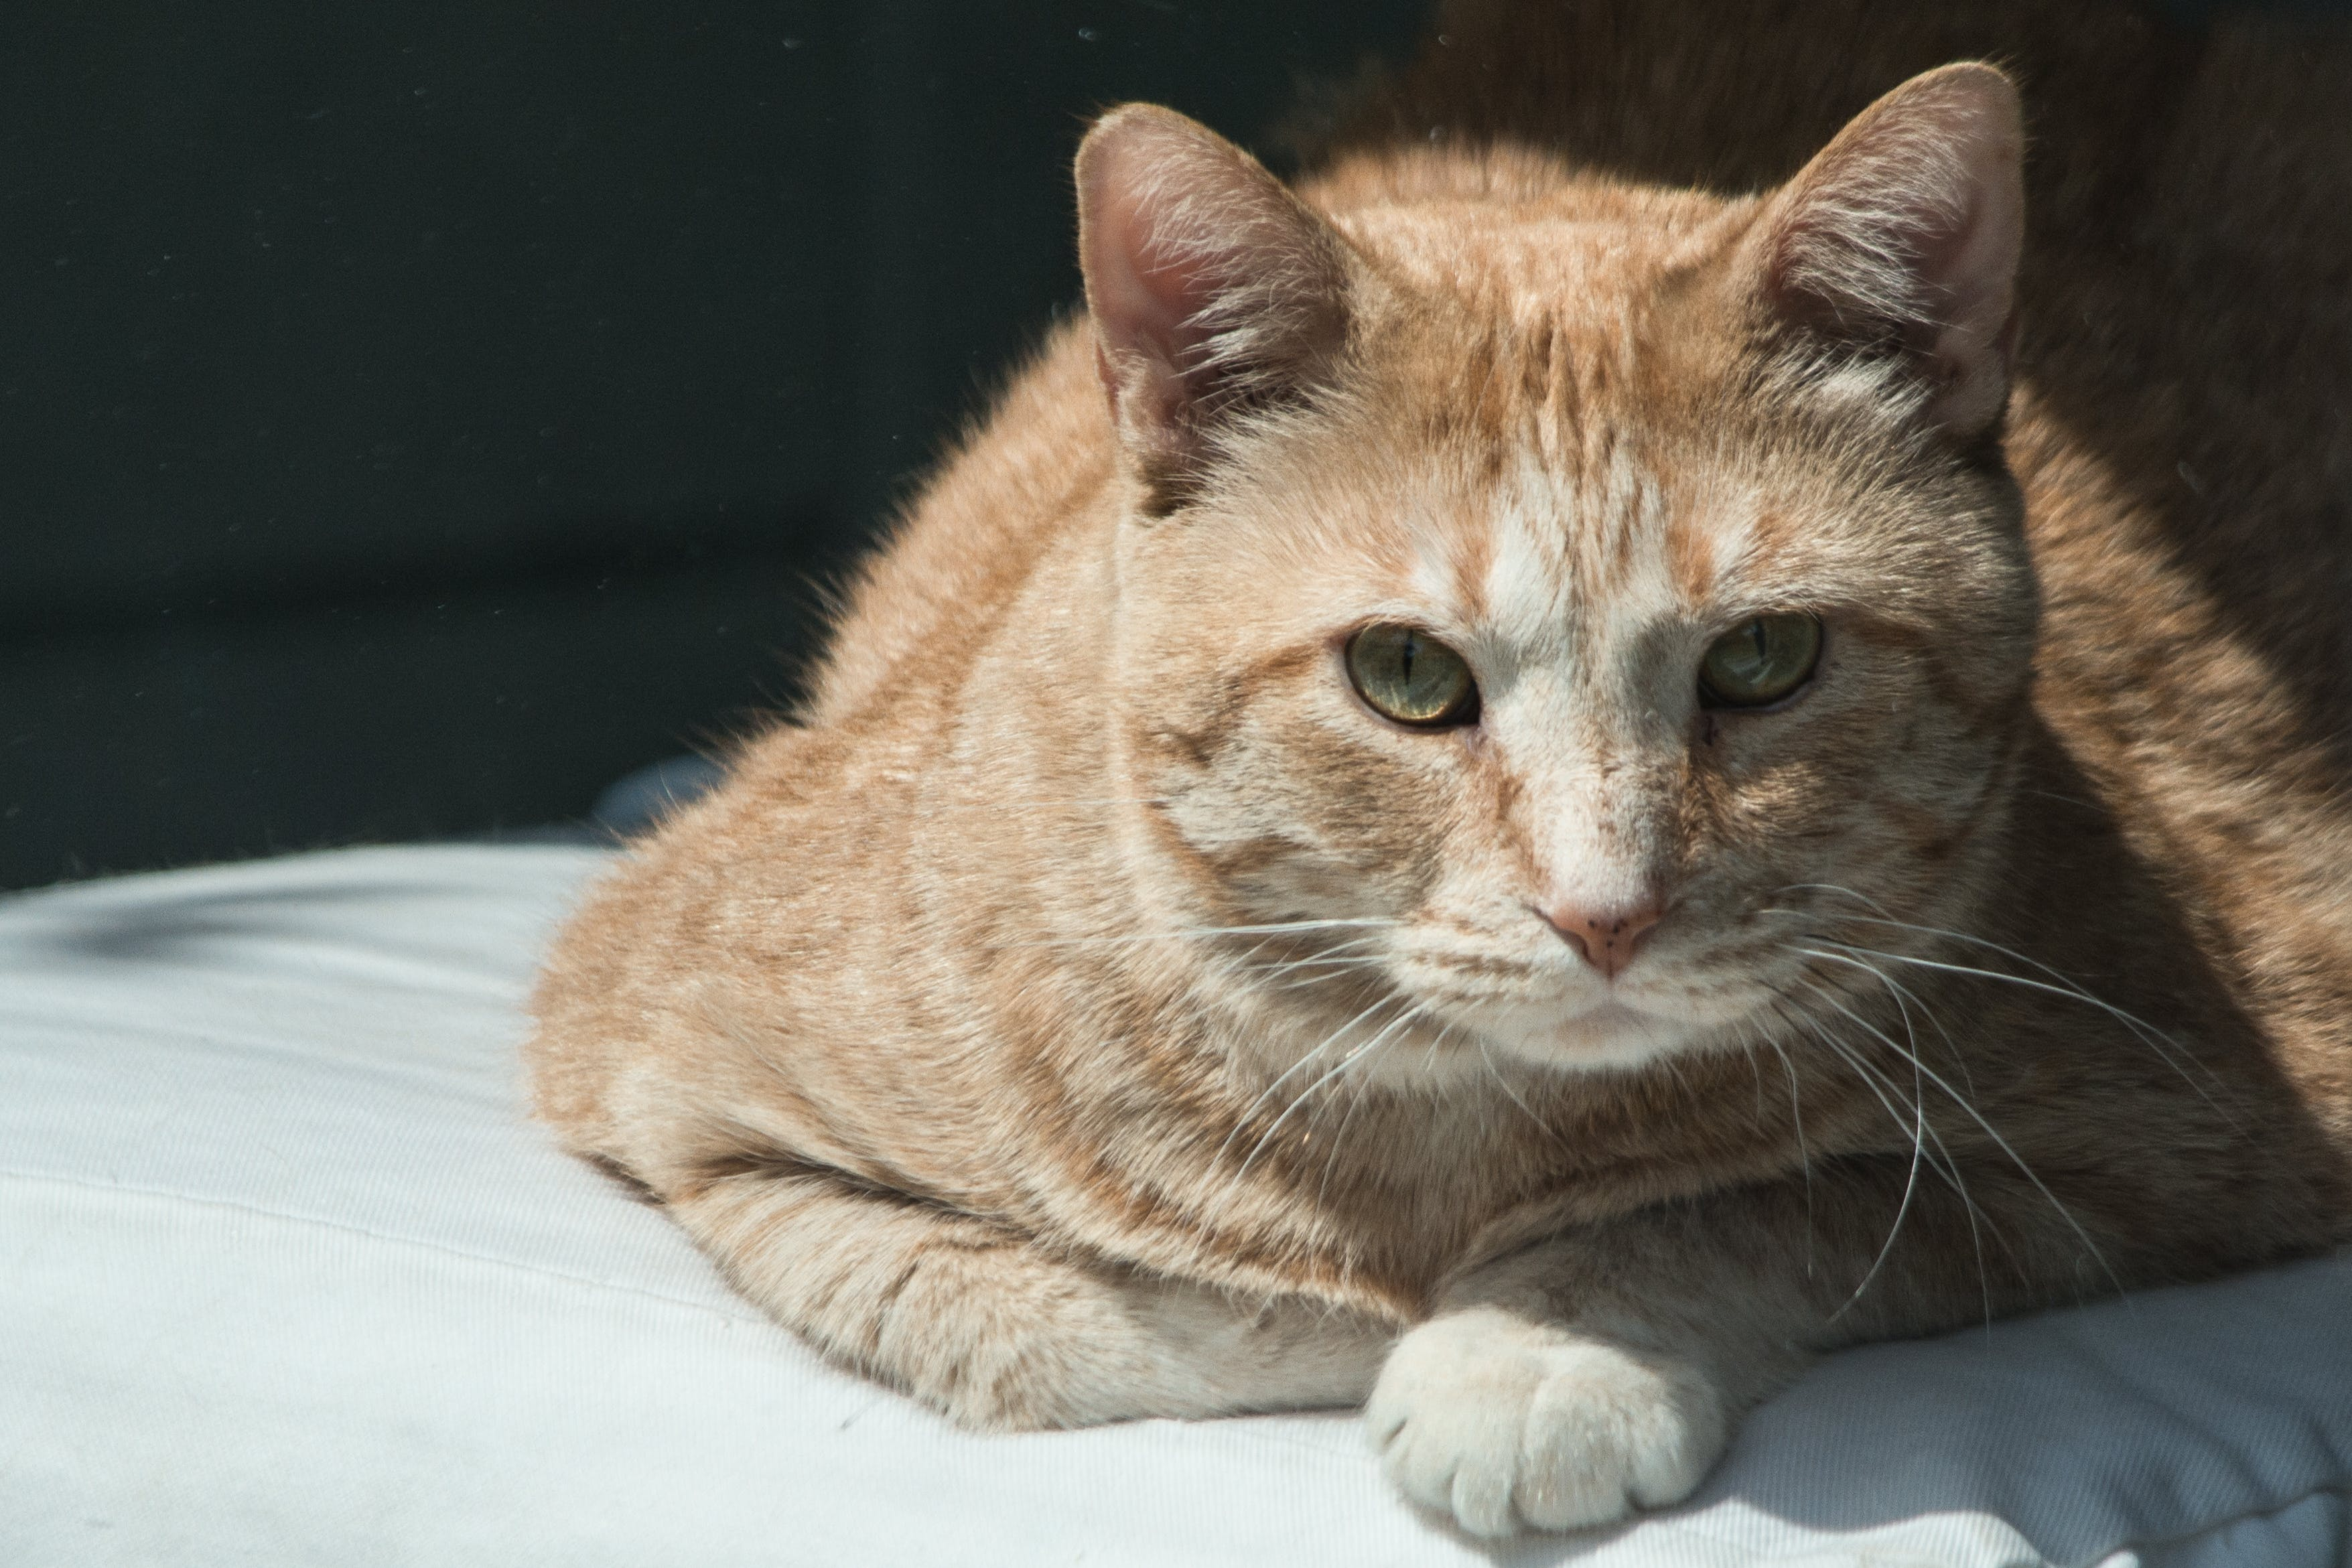 Close-up Photography of Orange Tabby Cat Lying on White Comforter